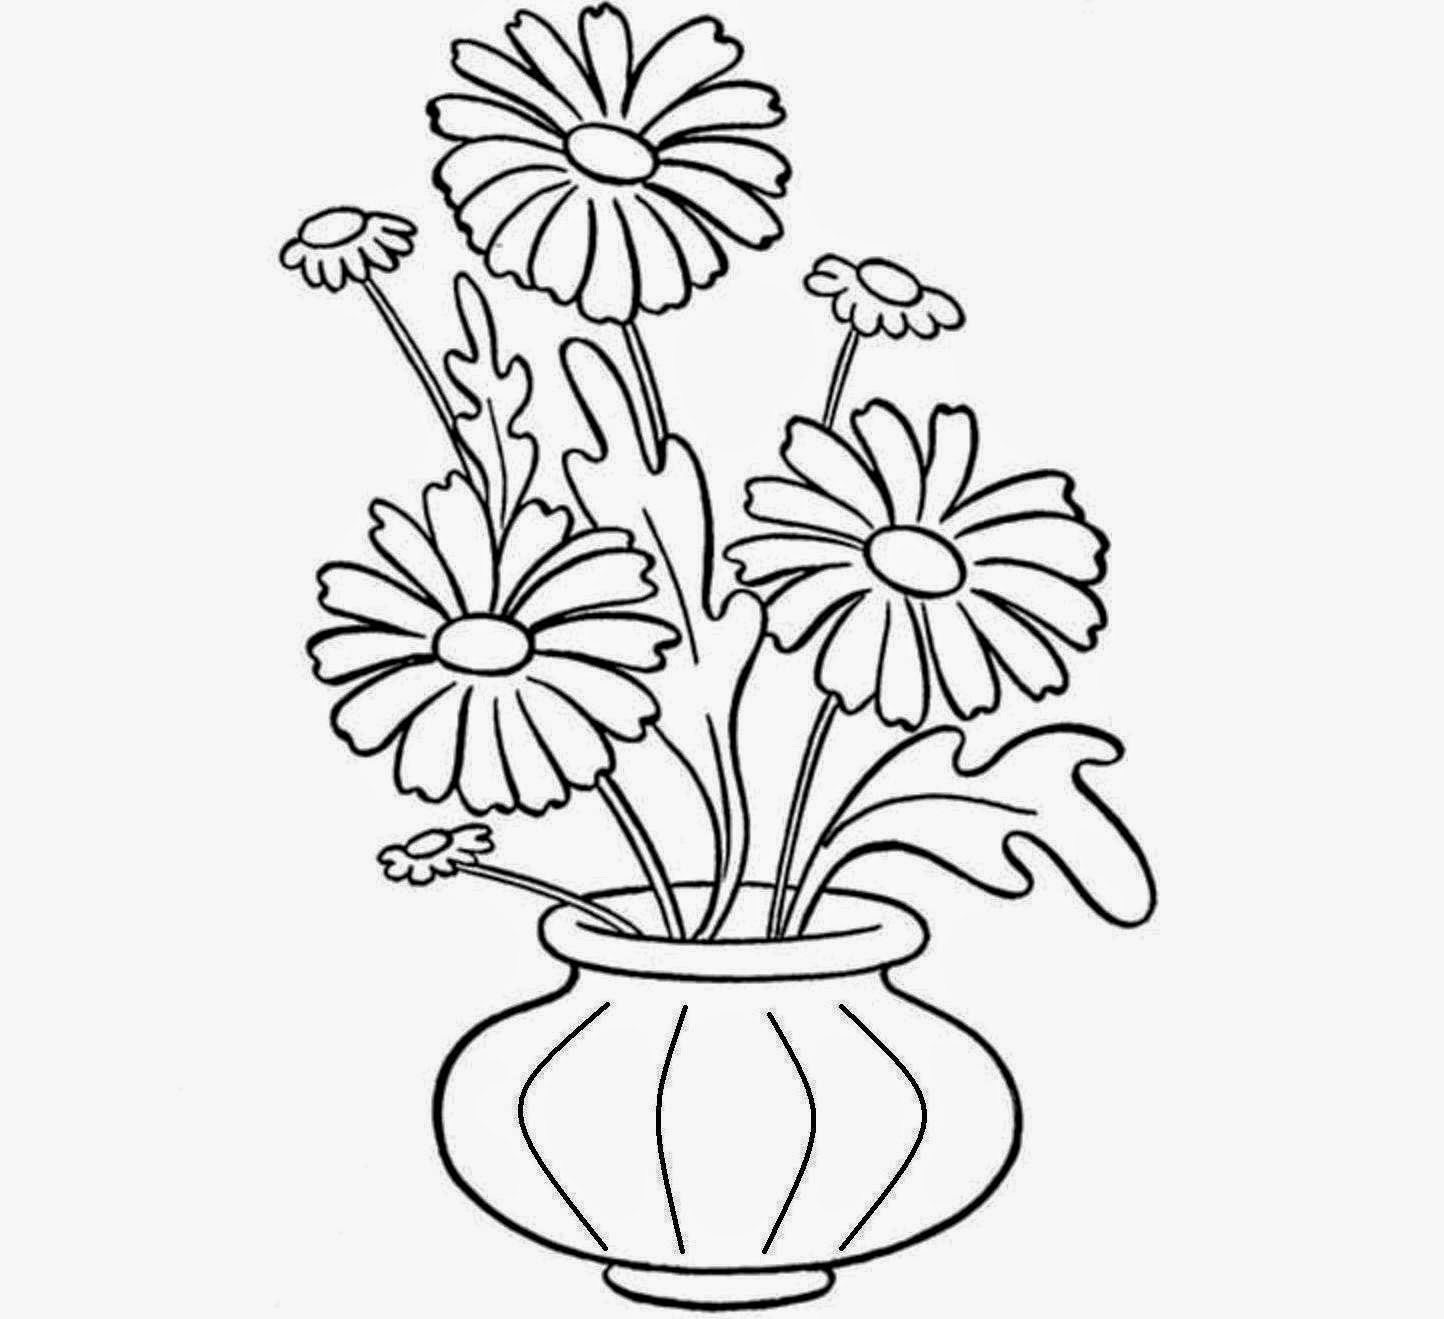 1444x1319 Flowers With Vase Drawing Easy Flower Vase Drawing